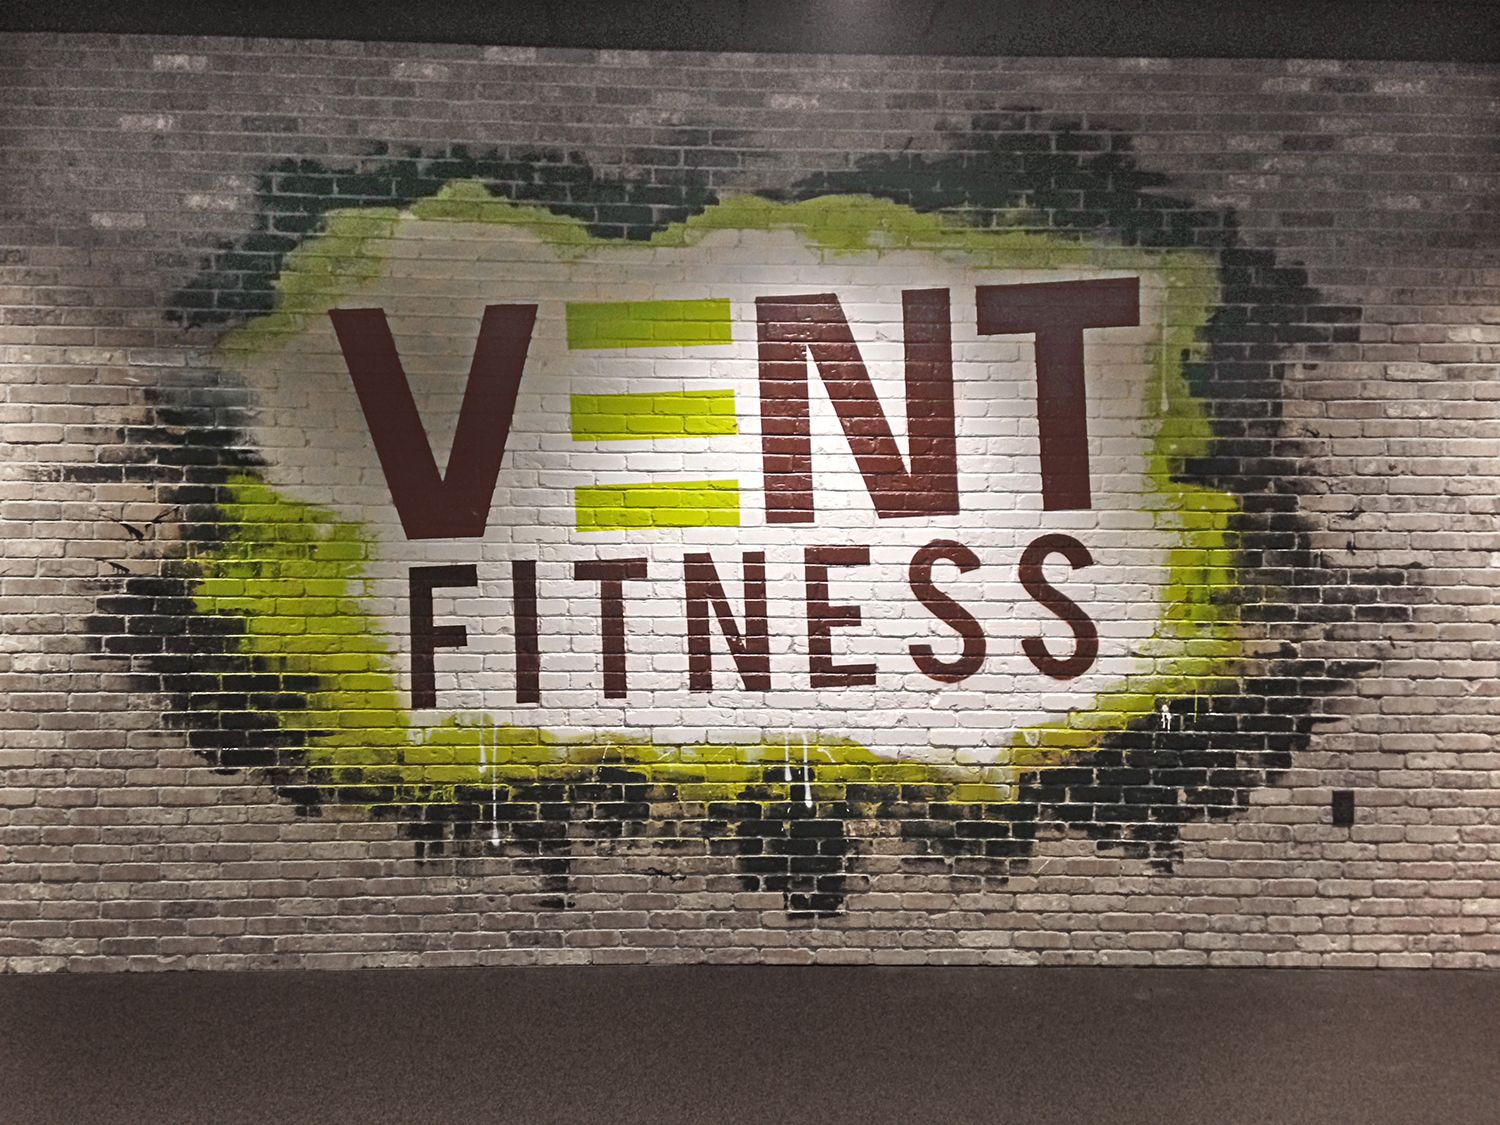 Vent Fitness Gym Mural In New York Vent Fitness Gym Workouts Gym Interior